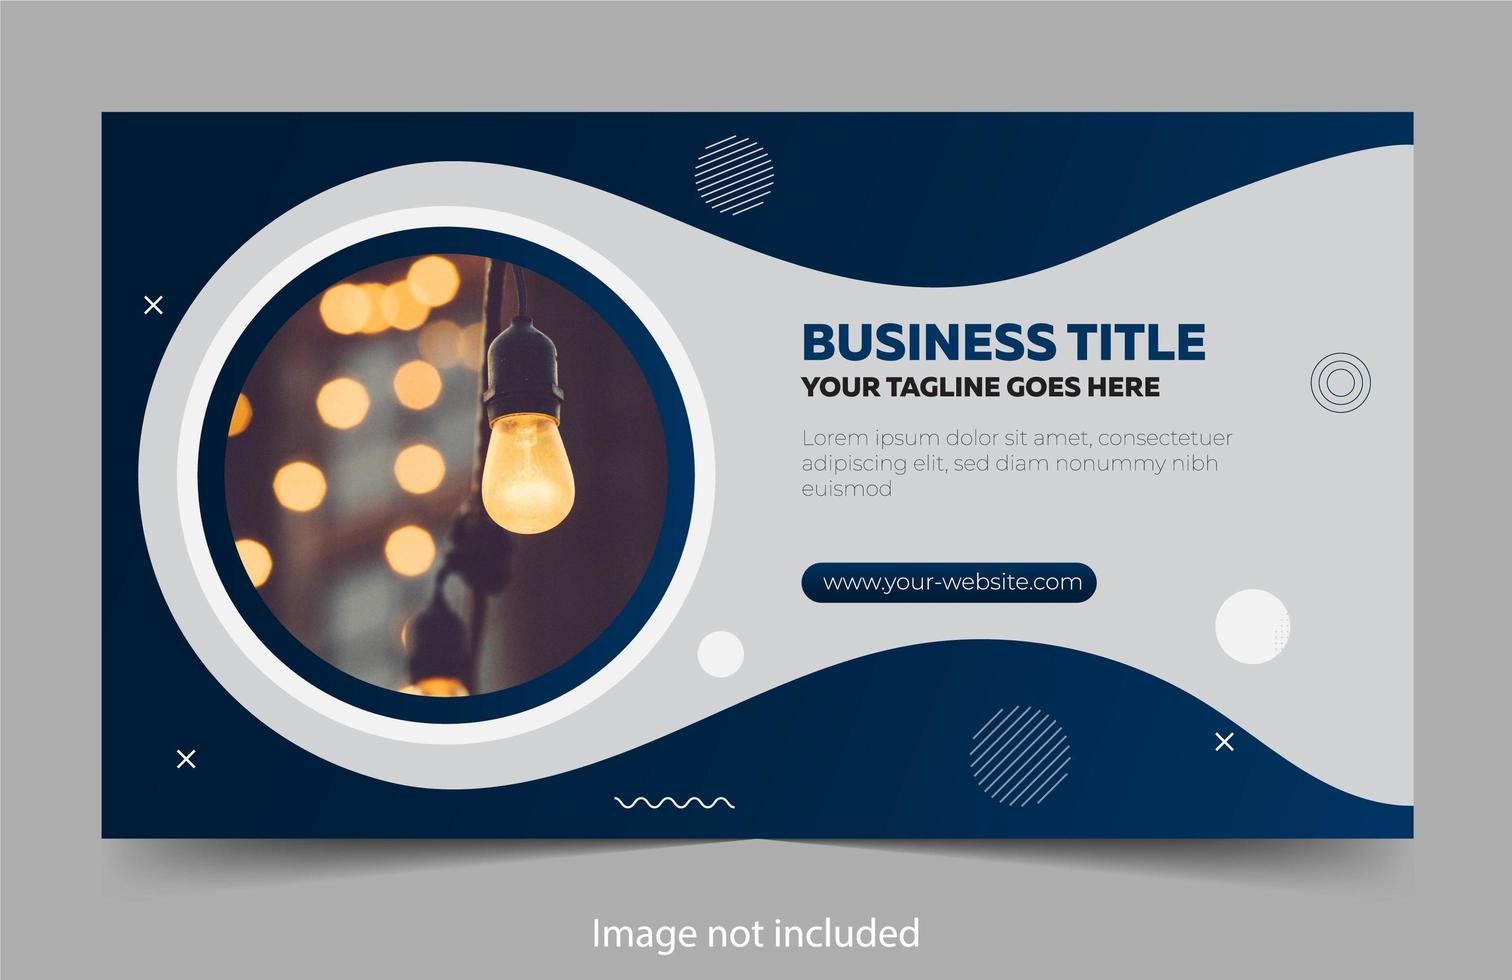 Business banner design with wavy blue shapes vector